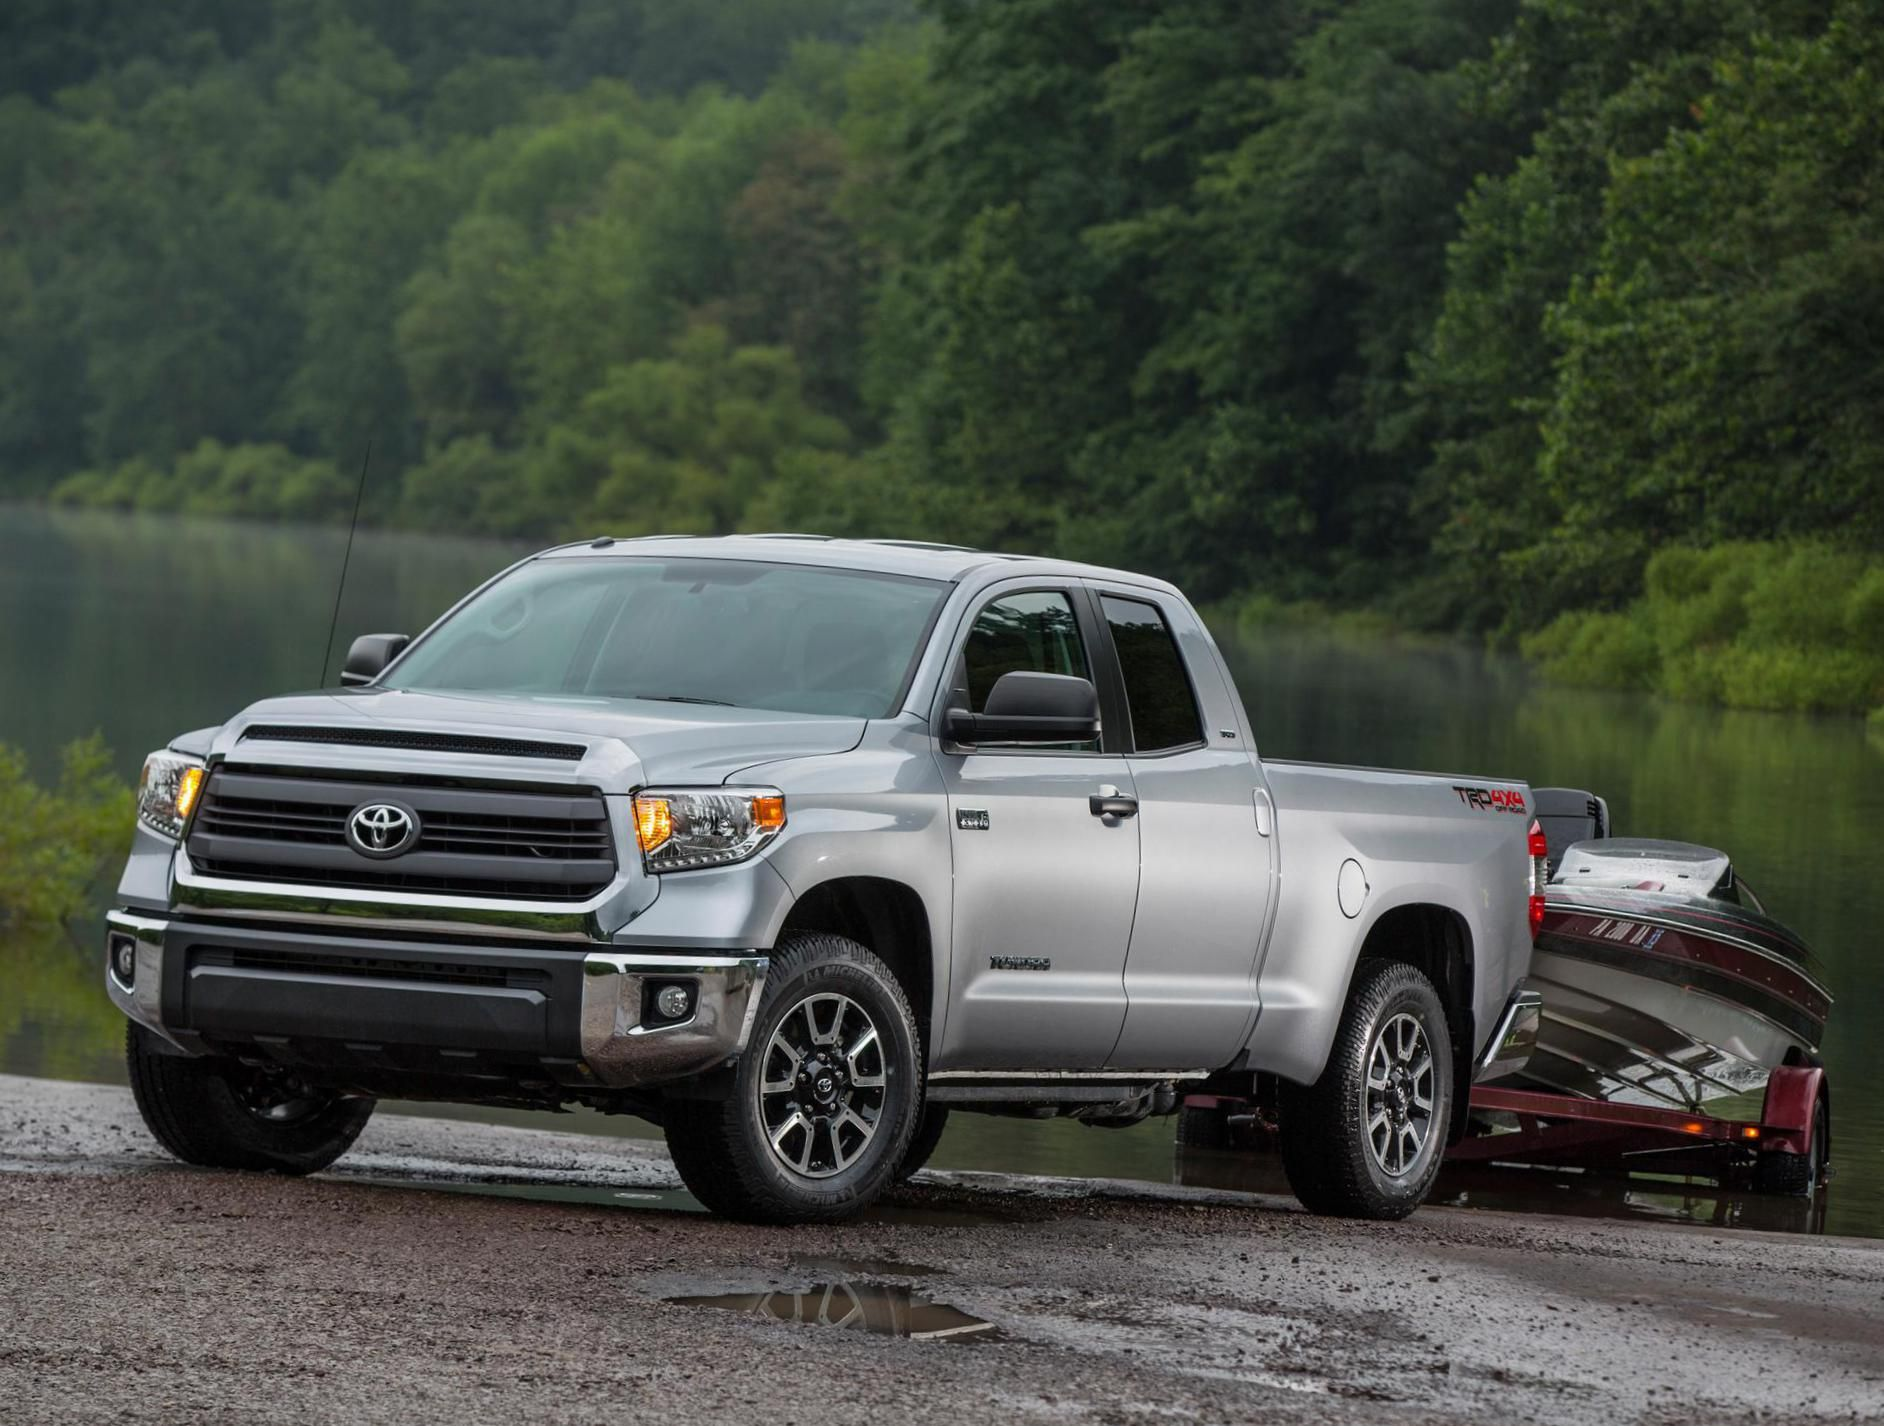 Tundra Double Cab Toyota approved - http://autotras.com